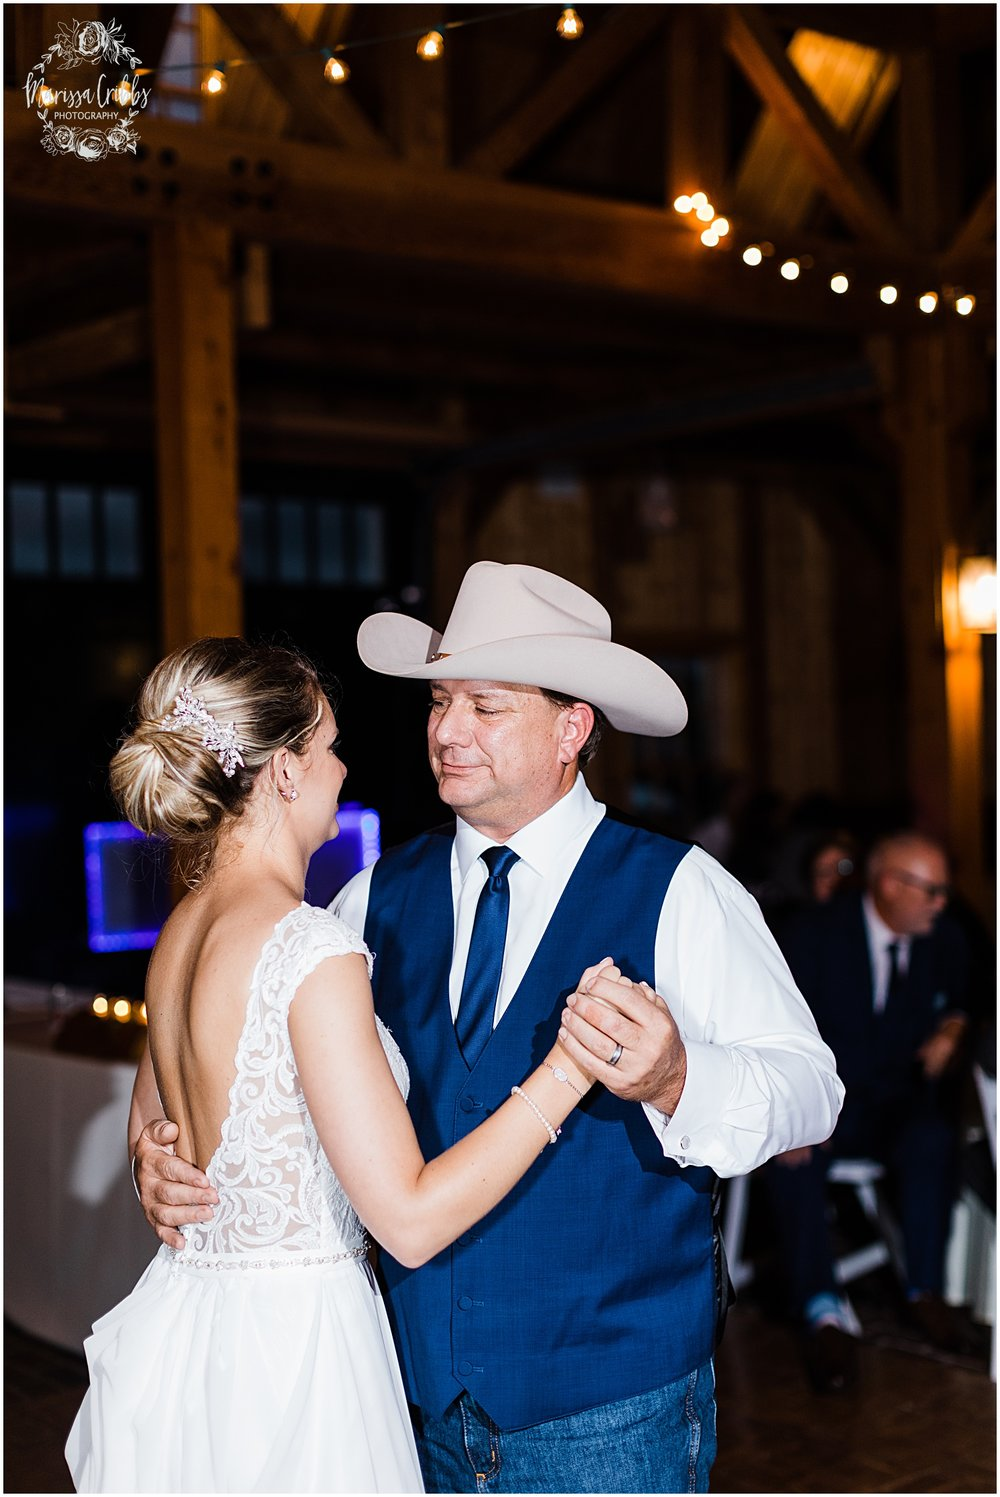 ROUNKLES WEDDING | MARISSA CRIBBS PHOTOGRAPHY | MILDALE FARM_6192.jpg